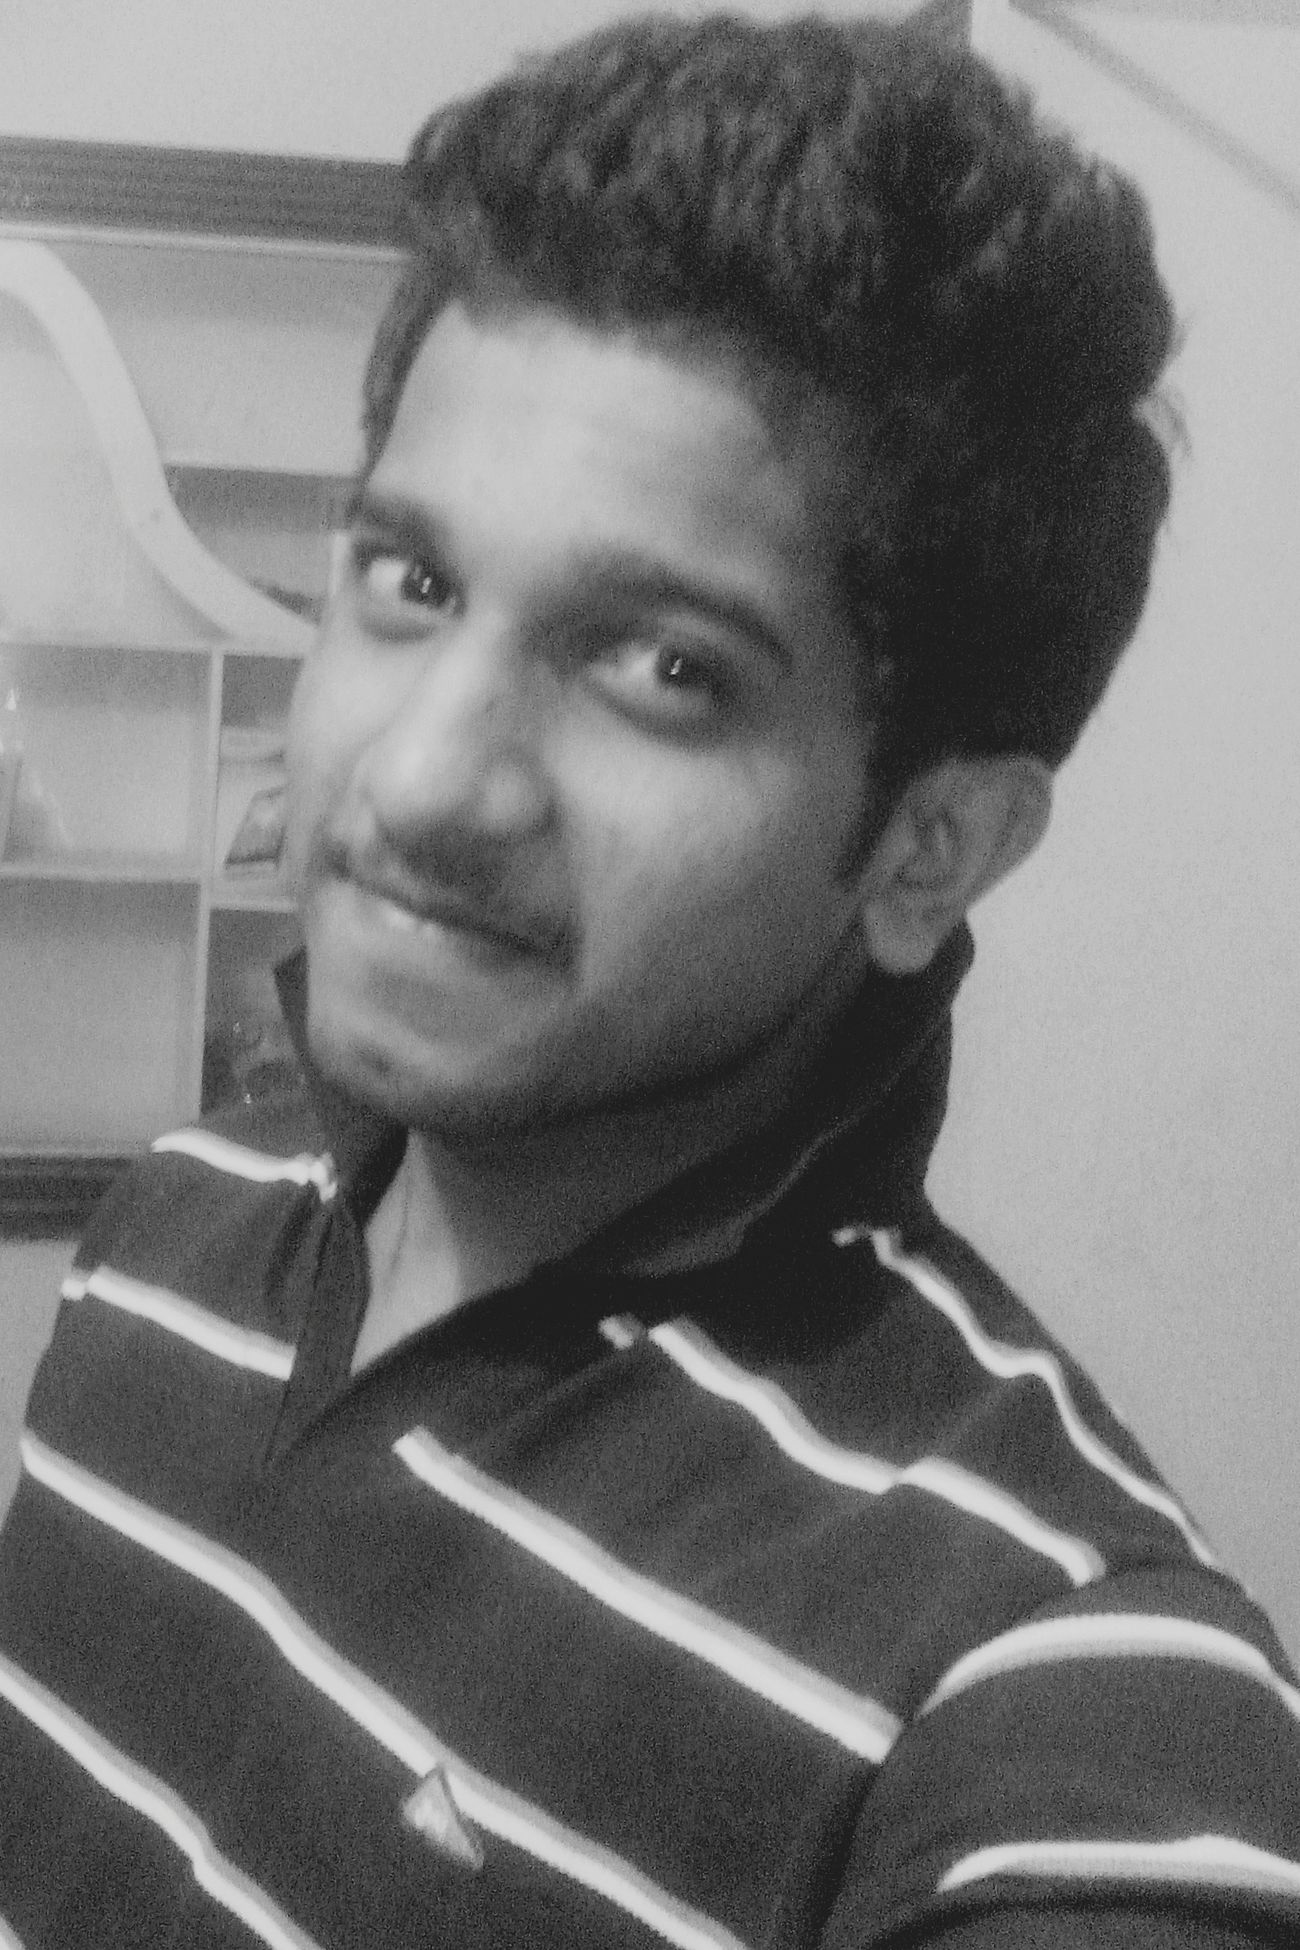 Bangalore Check This Out Selfie That's Me Hi! Cheese! ......@